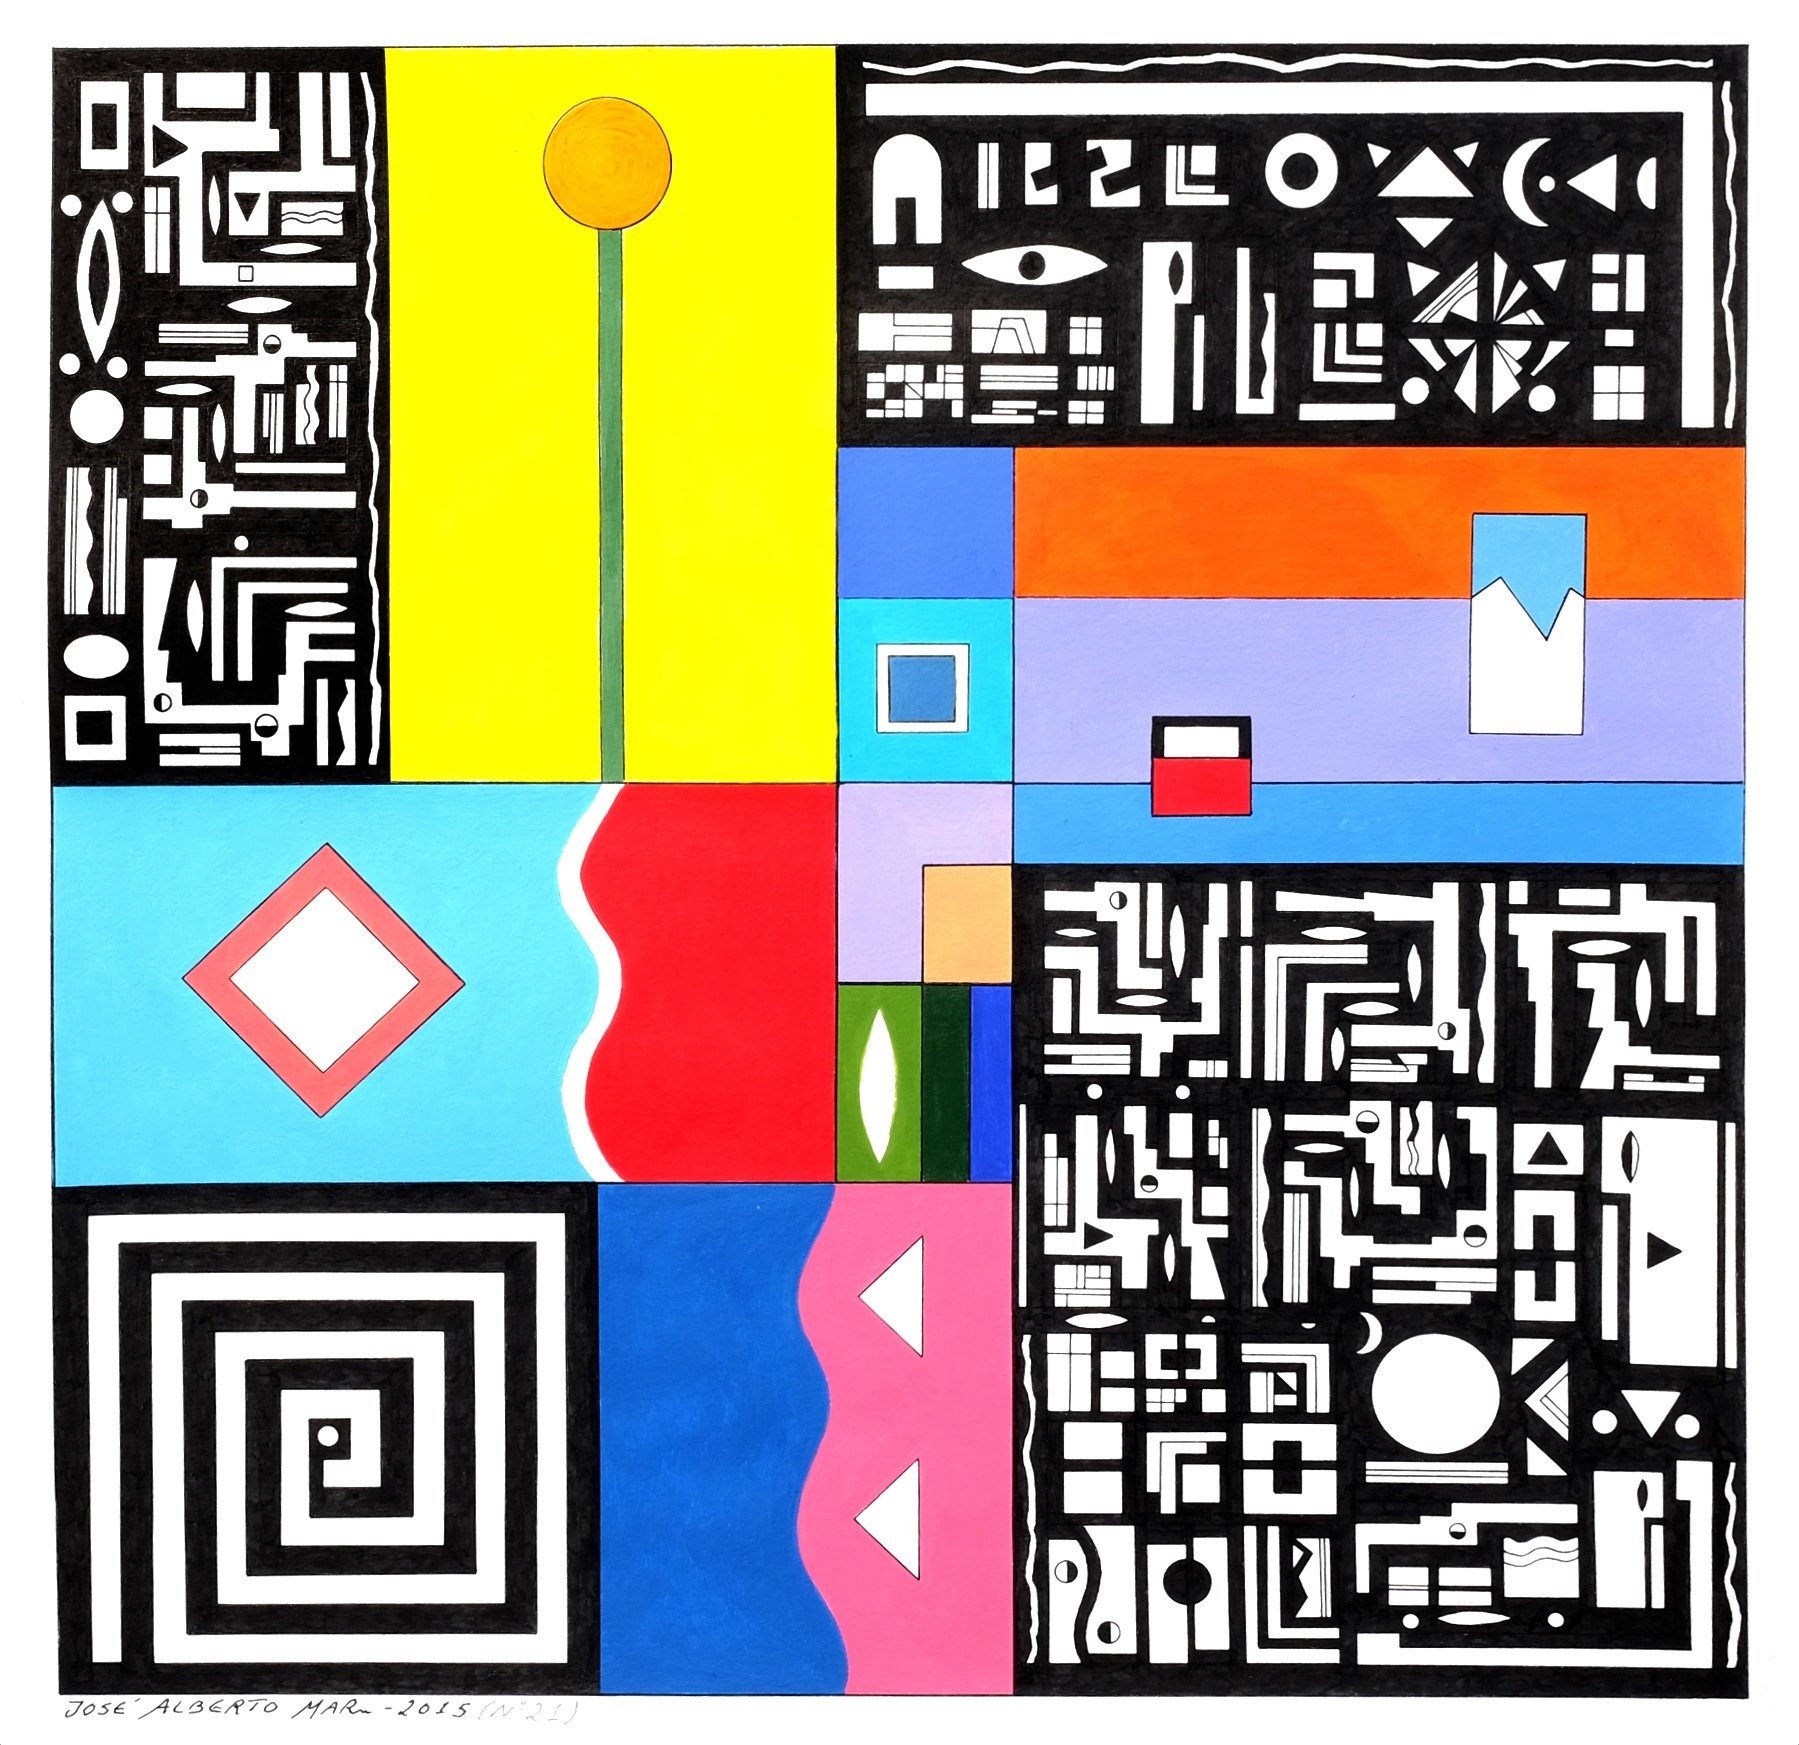 SERIES: SMALL WISDOMS (Nº 21). SÉRIE: PEQUENAS SABEDORIAS (Nº21), original Geometric Acrylic Painting by José Alberto Mar